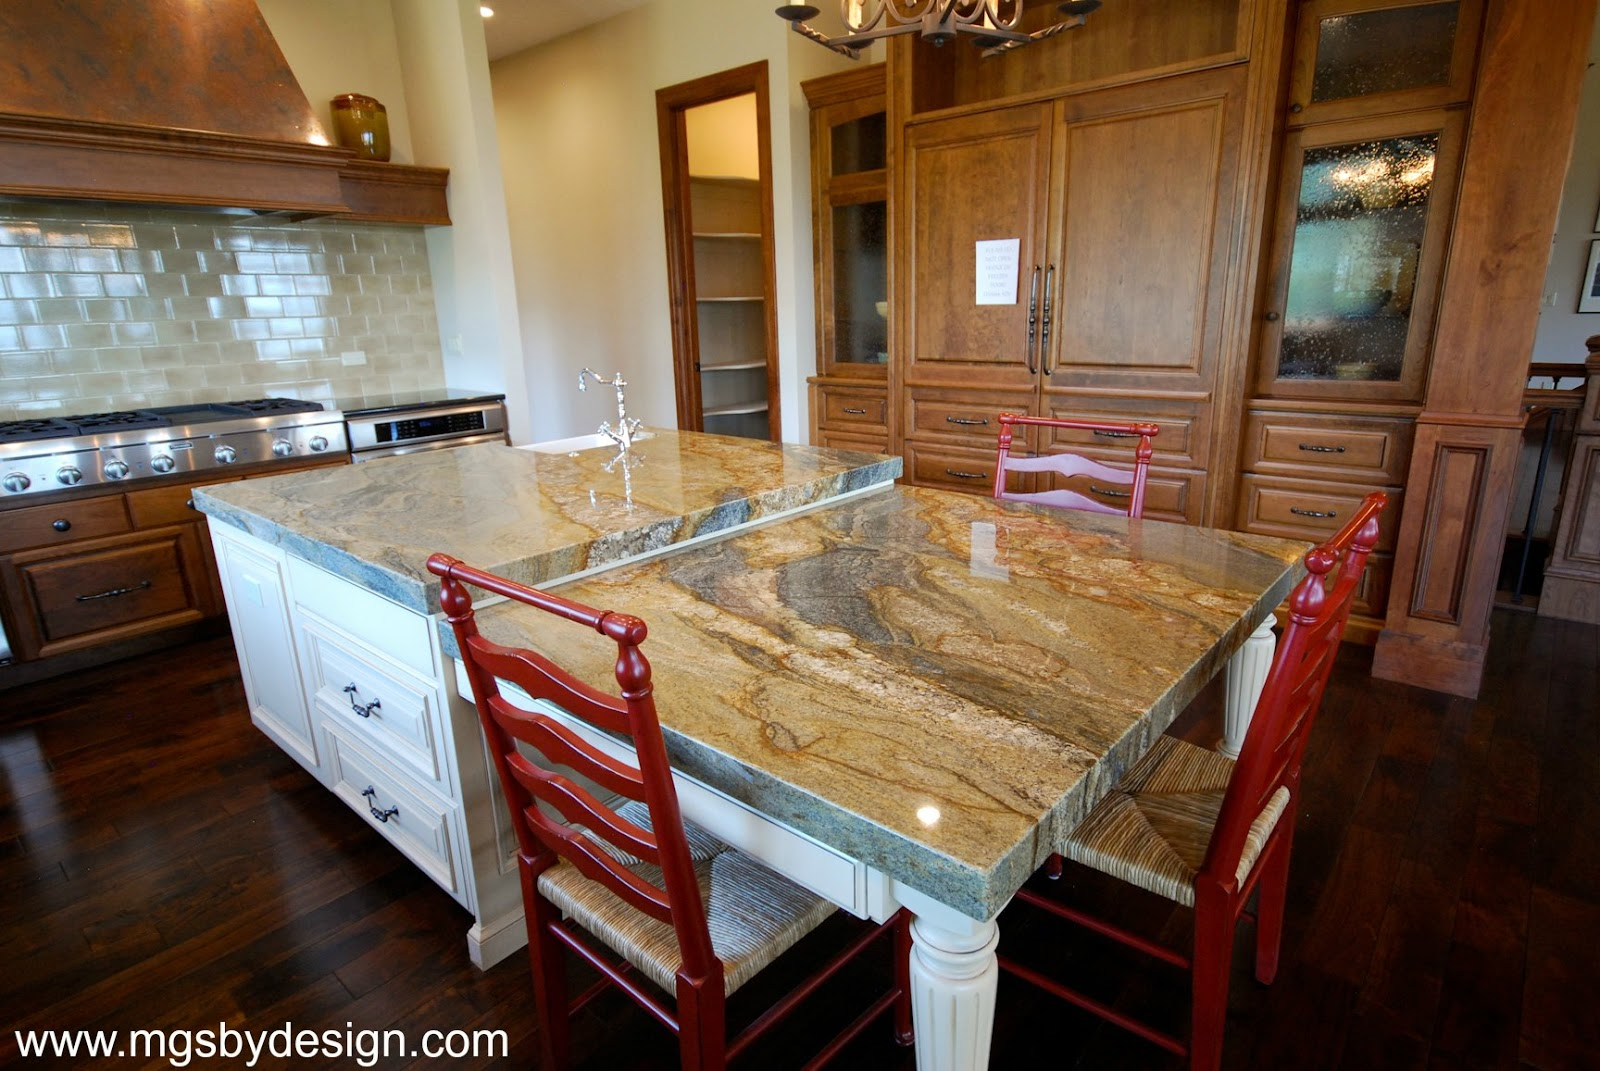 the granite gurus absolute black australian reef granite absolute black australian reef granite kitchen from mgs by design